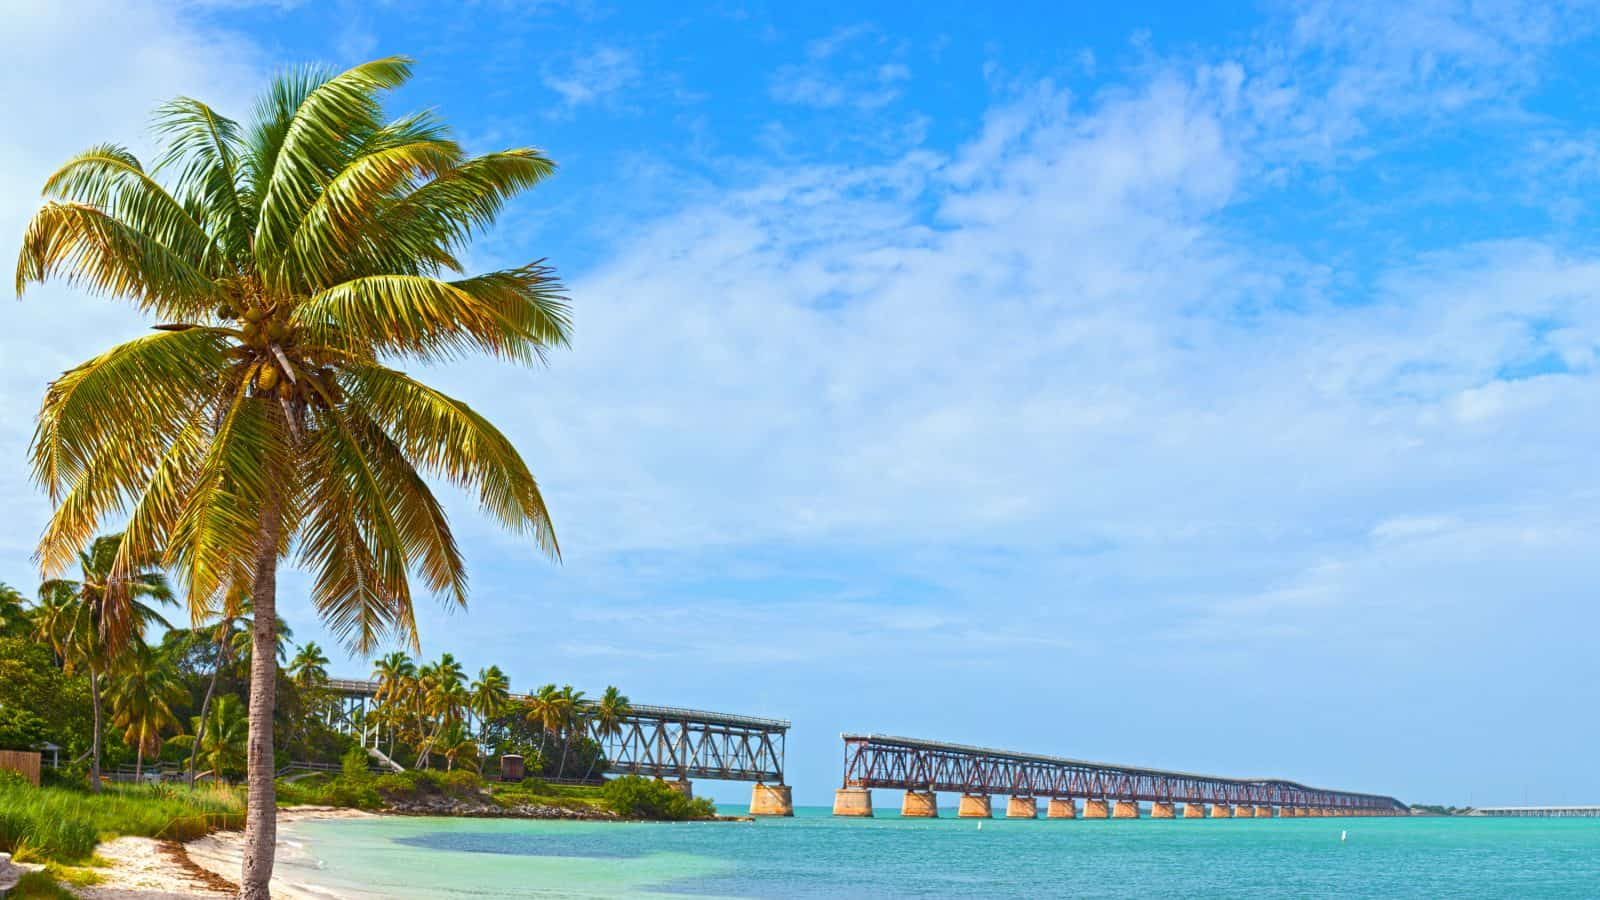 Bahia Honda state park is one of the best things to do in the keys